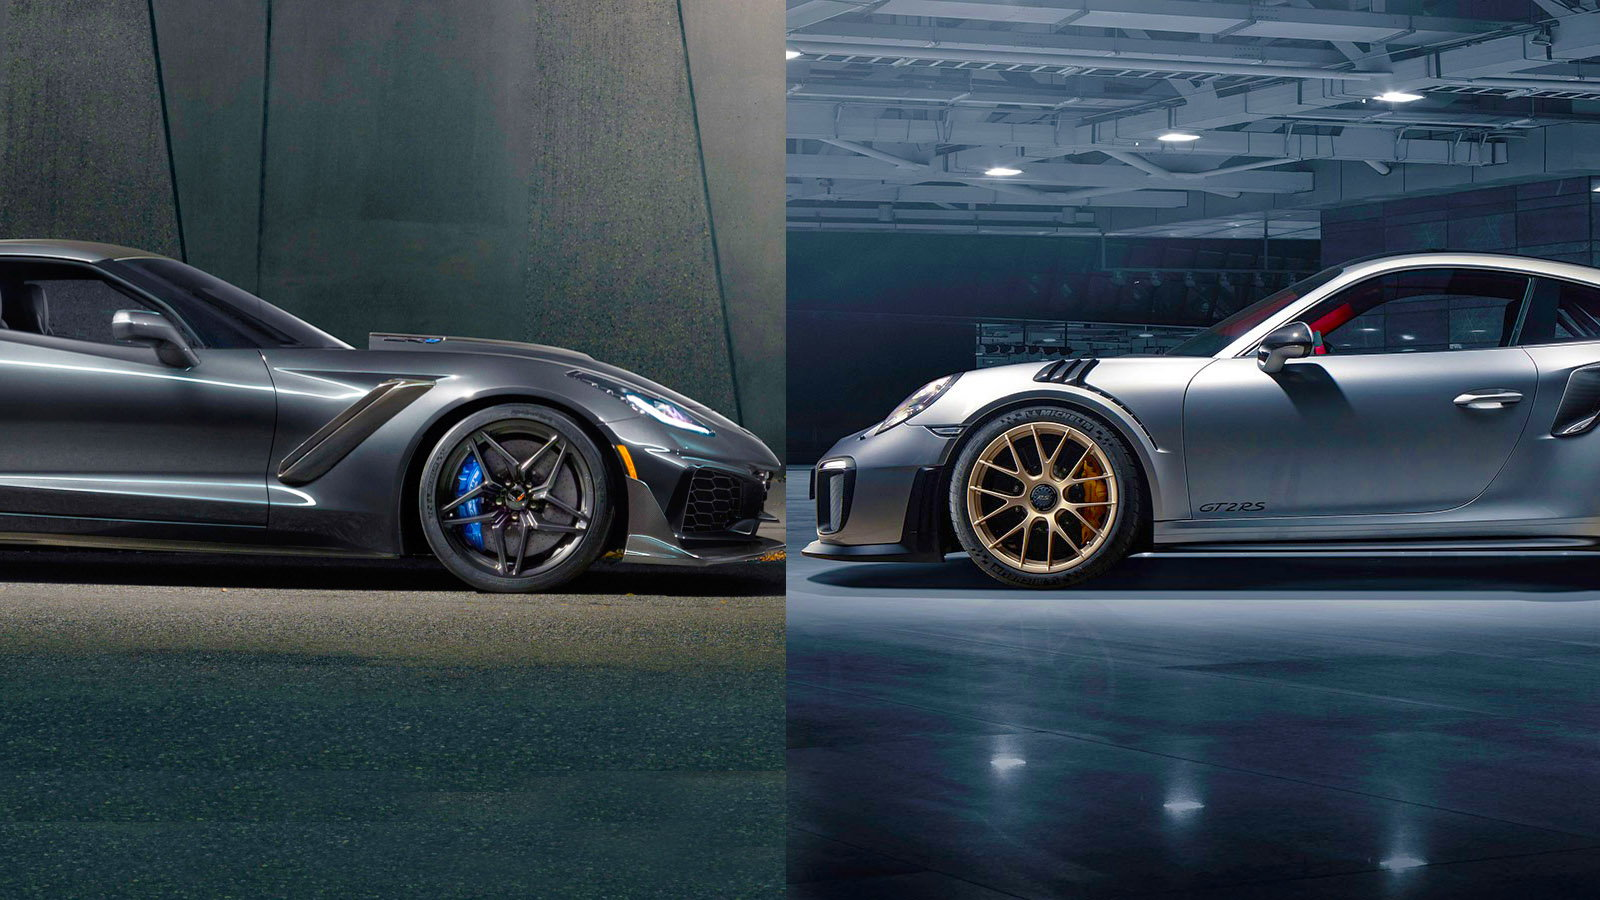 GT2 RS vs the 2019 Corvette ZR1